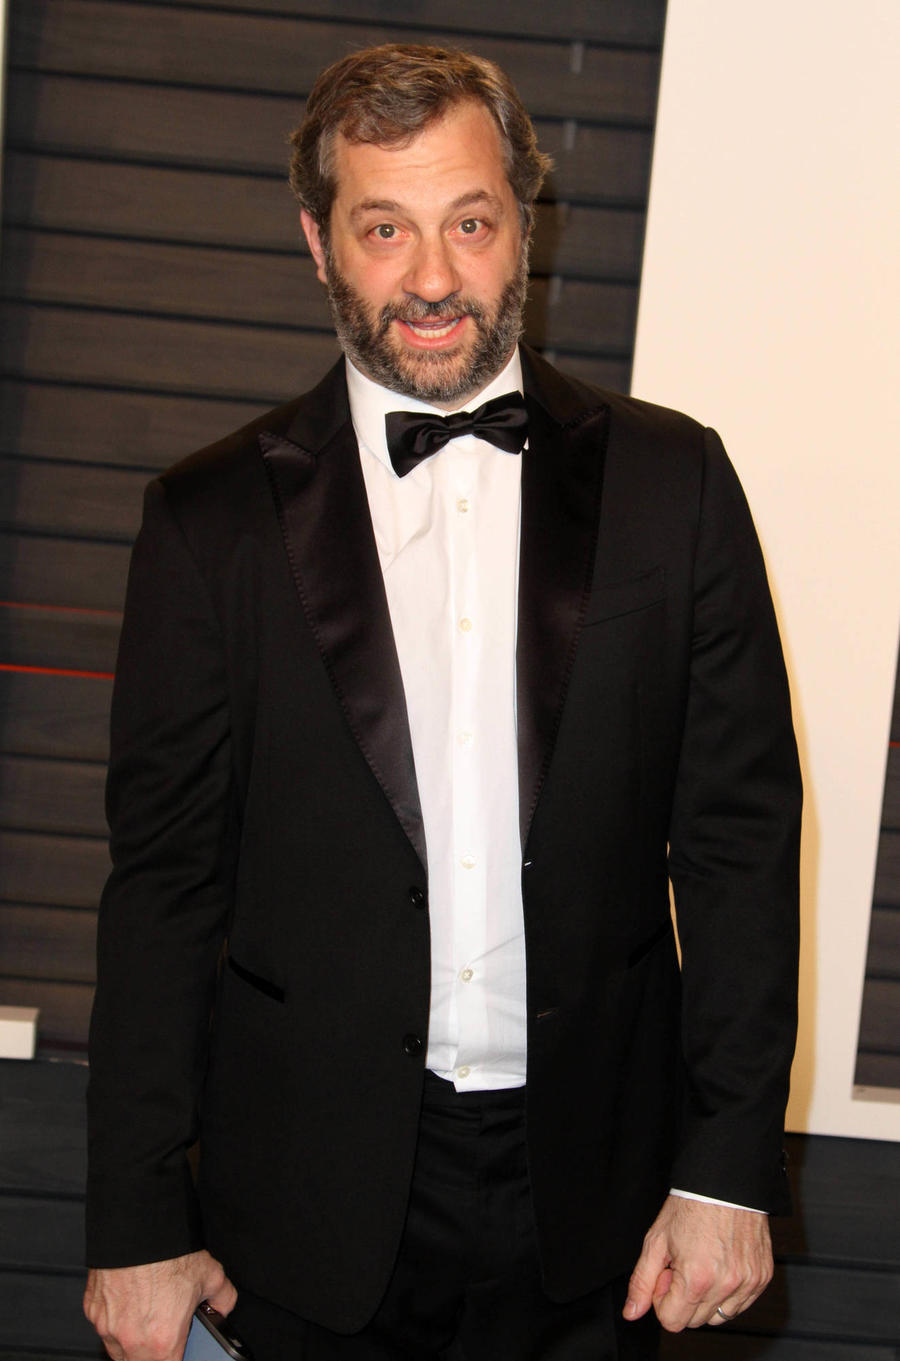 Judd Apatow: 'There's Never Enough Pee-wee!'